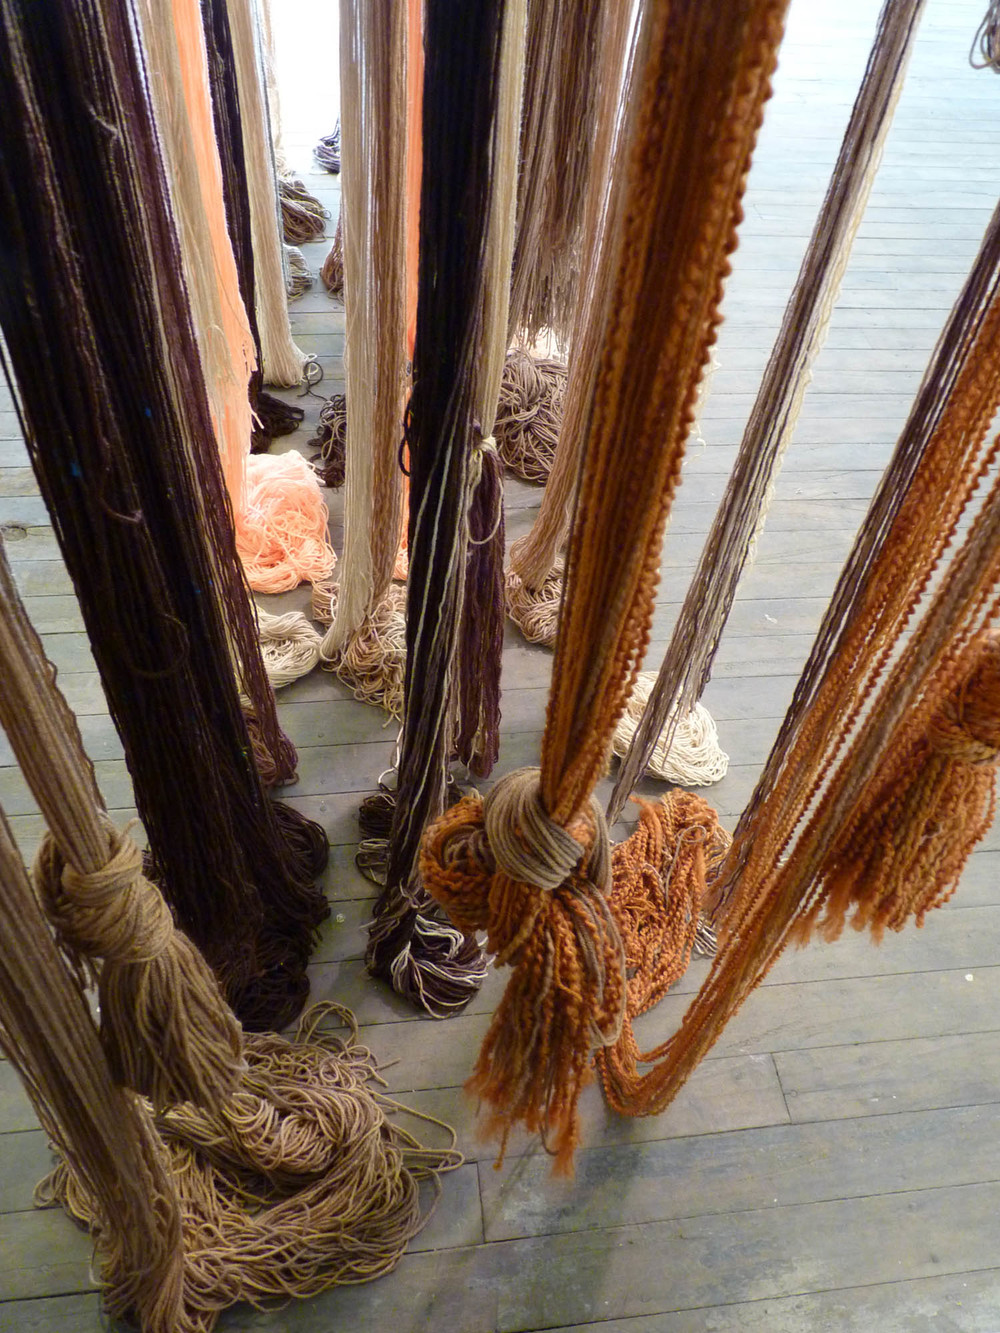 A Valence, 2012, Yarn, wood, poly-fil and hardware, 10 x 2 x 10 feet (Detail)